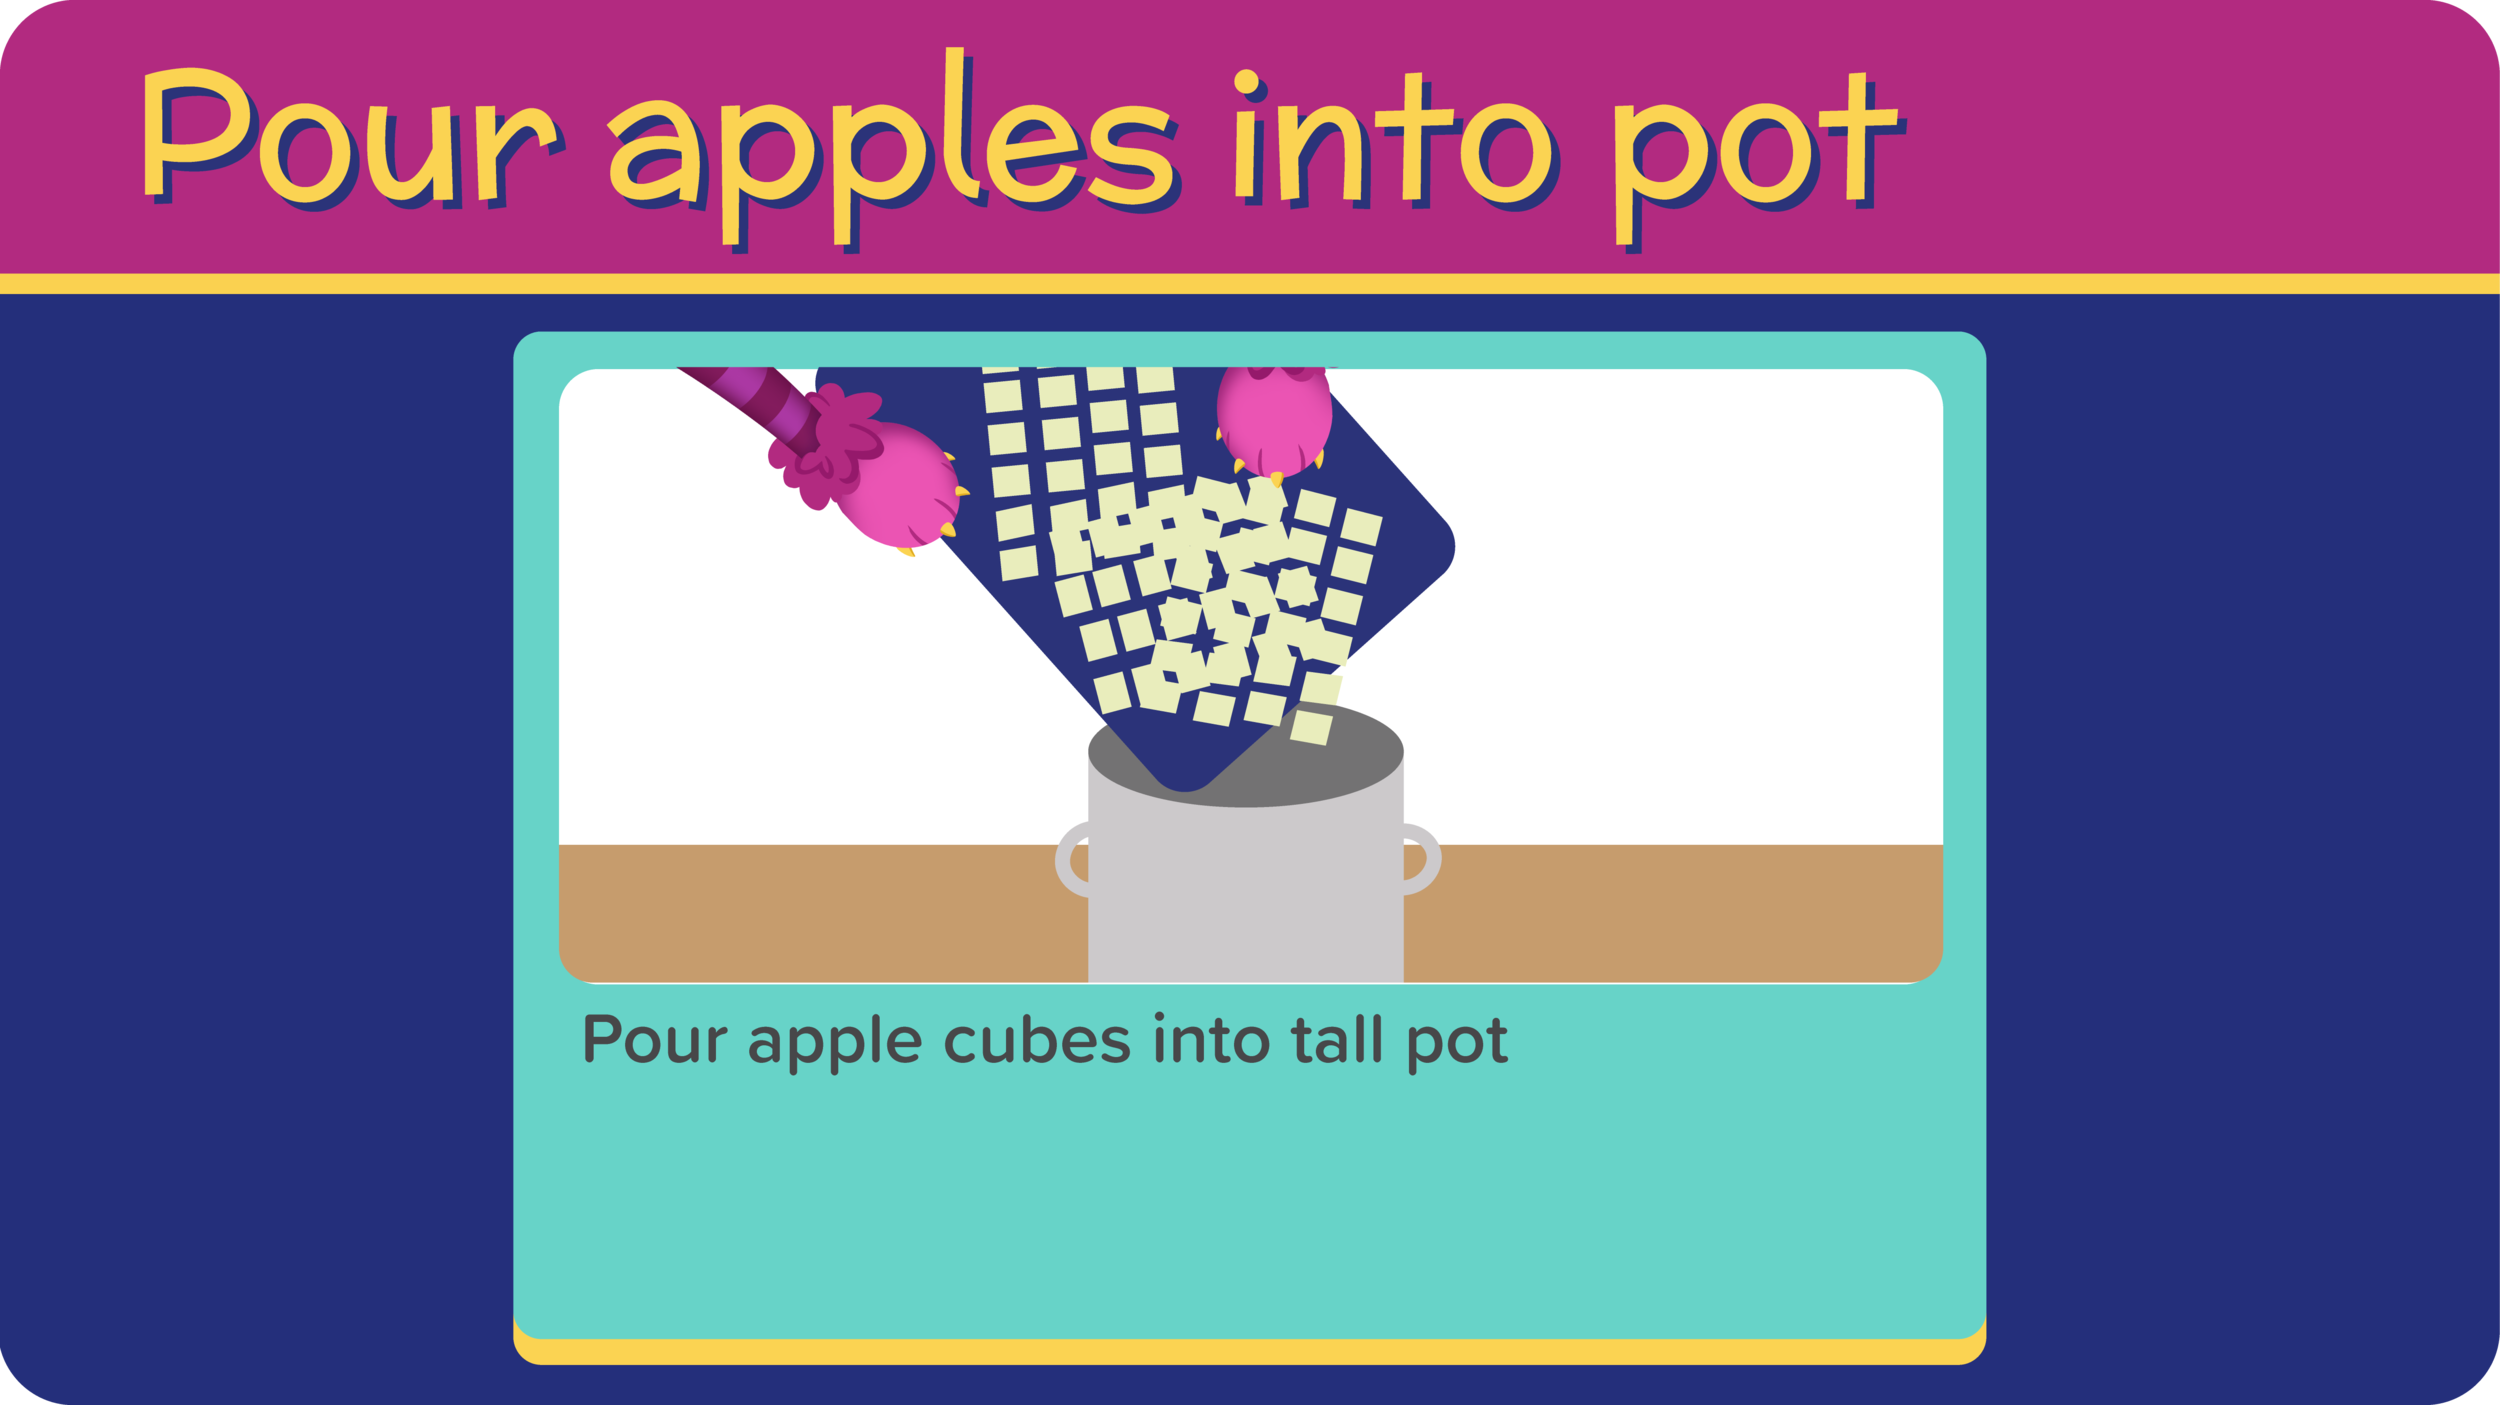 11_AppleSauce_Apples into pot-01.png